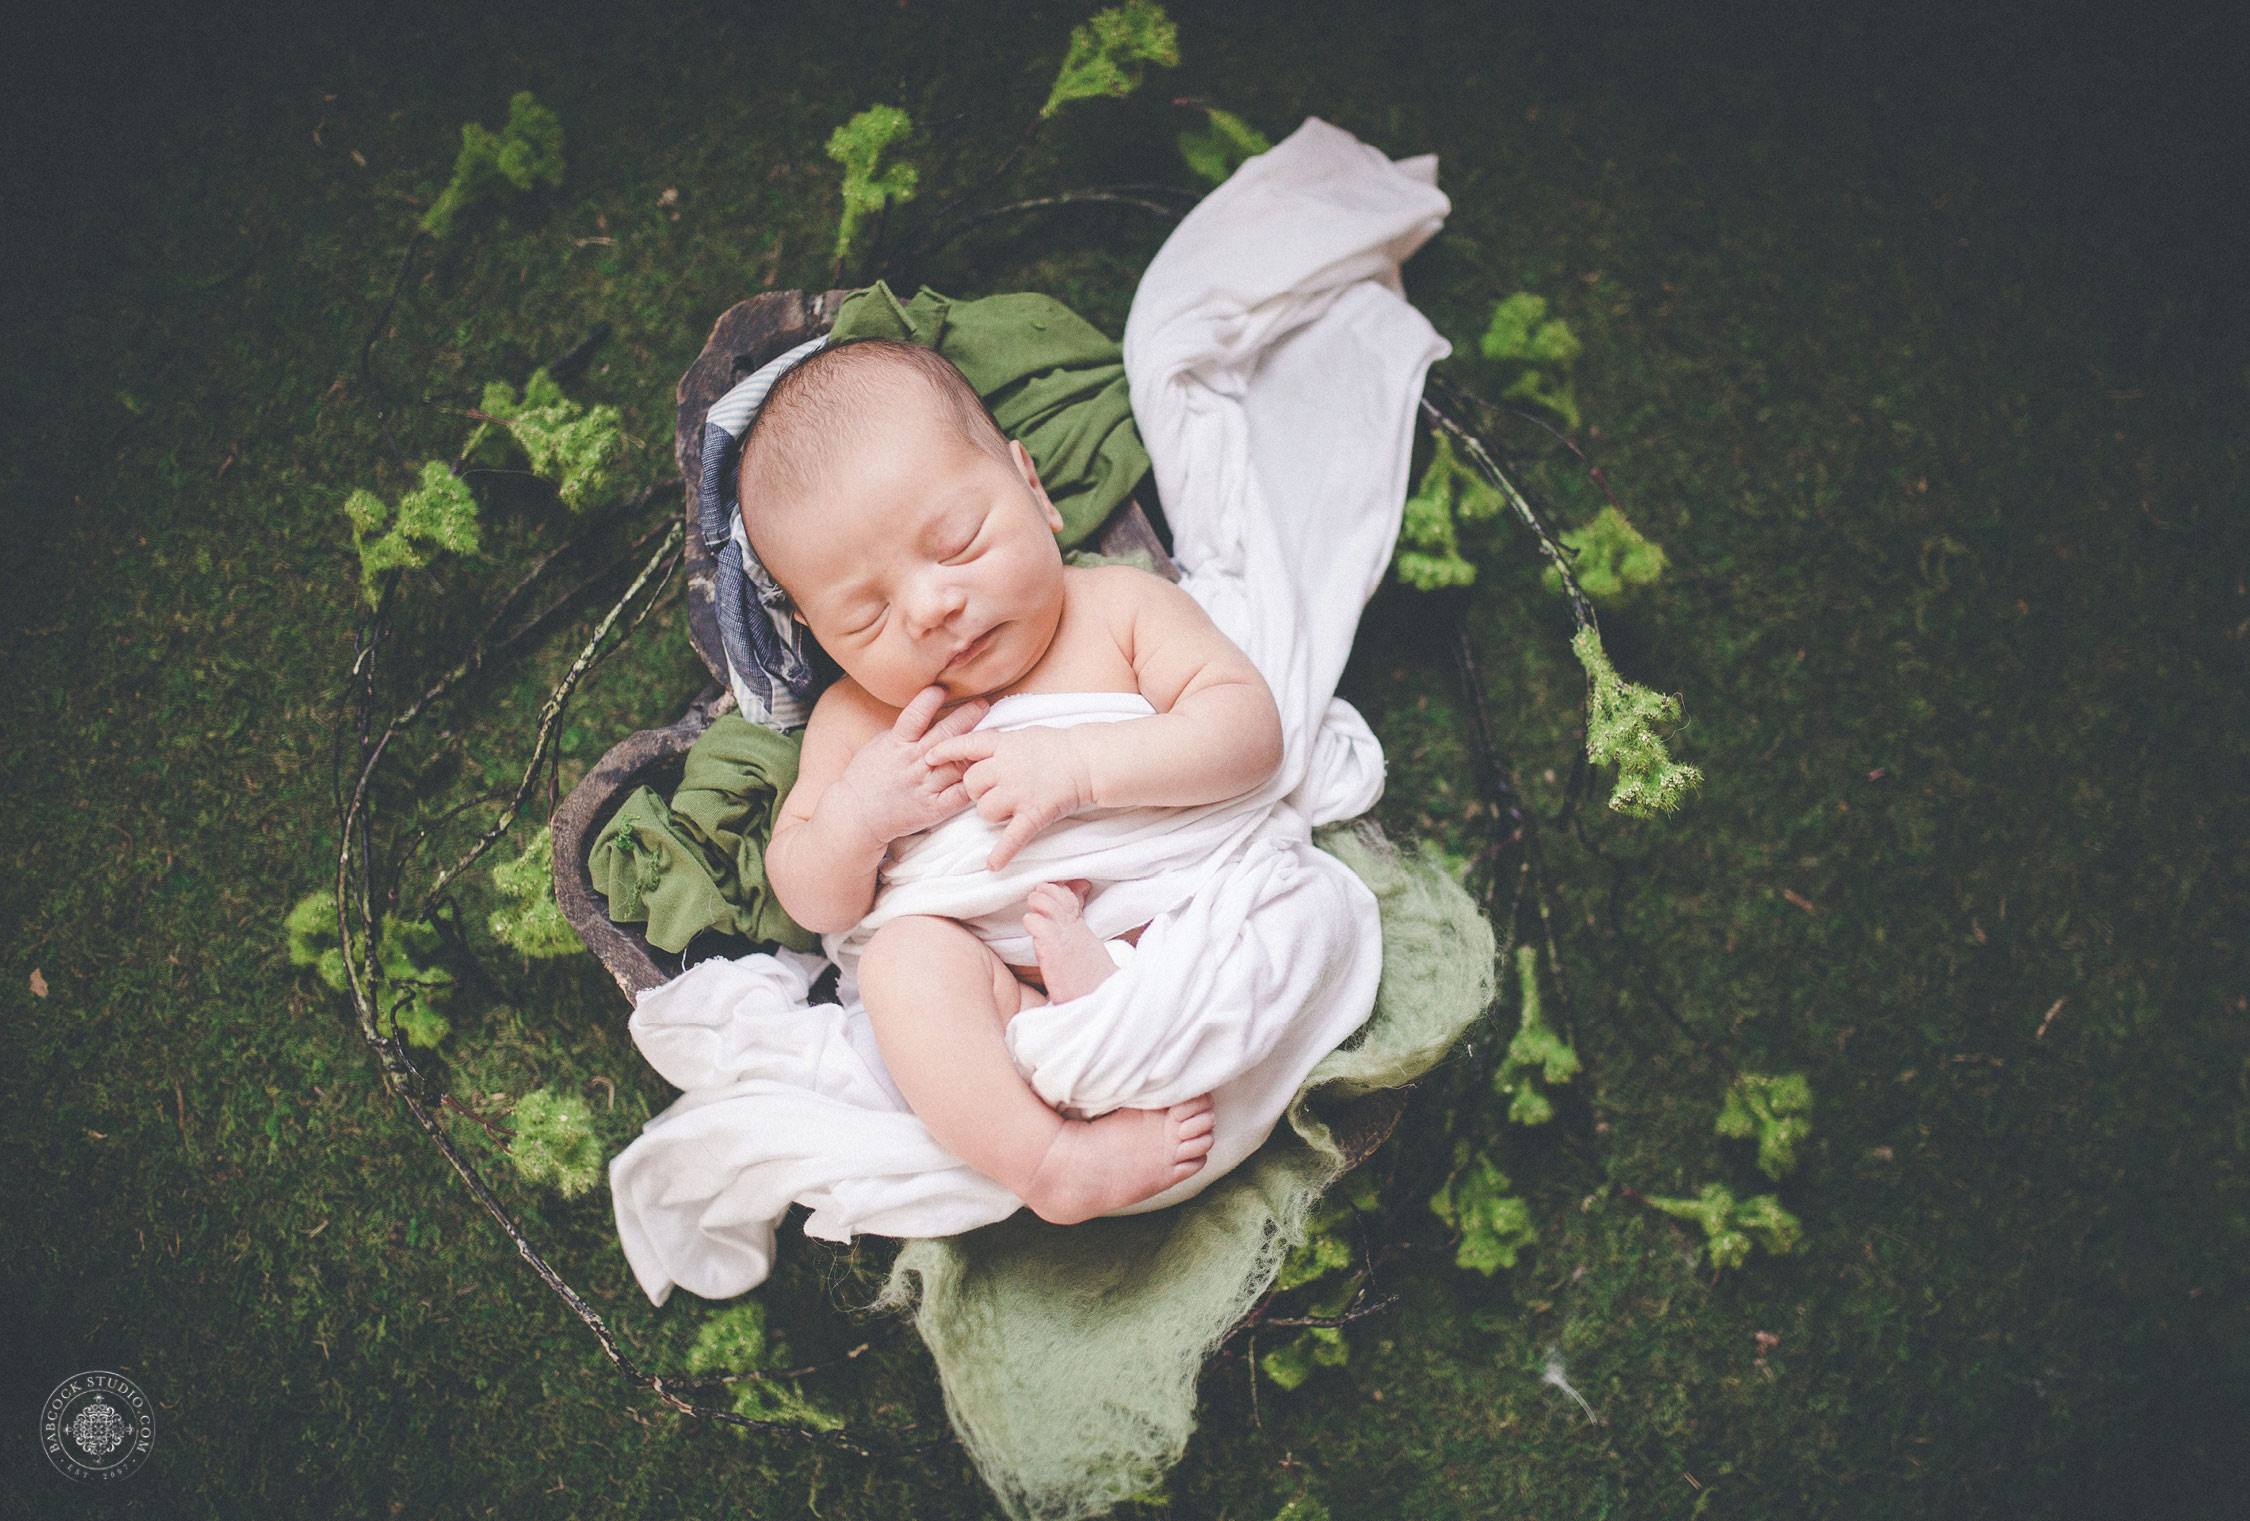 summer-owen-newborn-baby-photographer-dayton-ohio-8.jpg